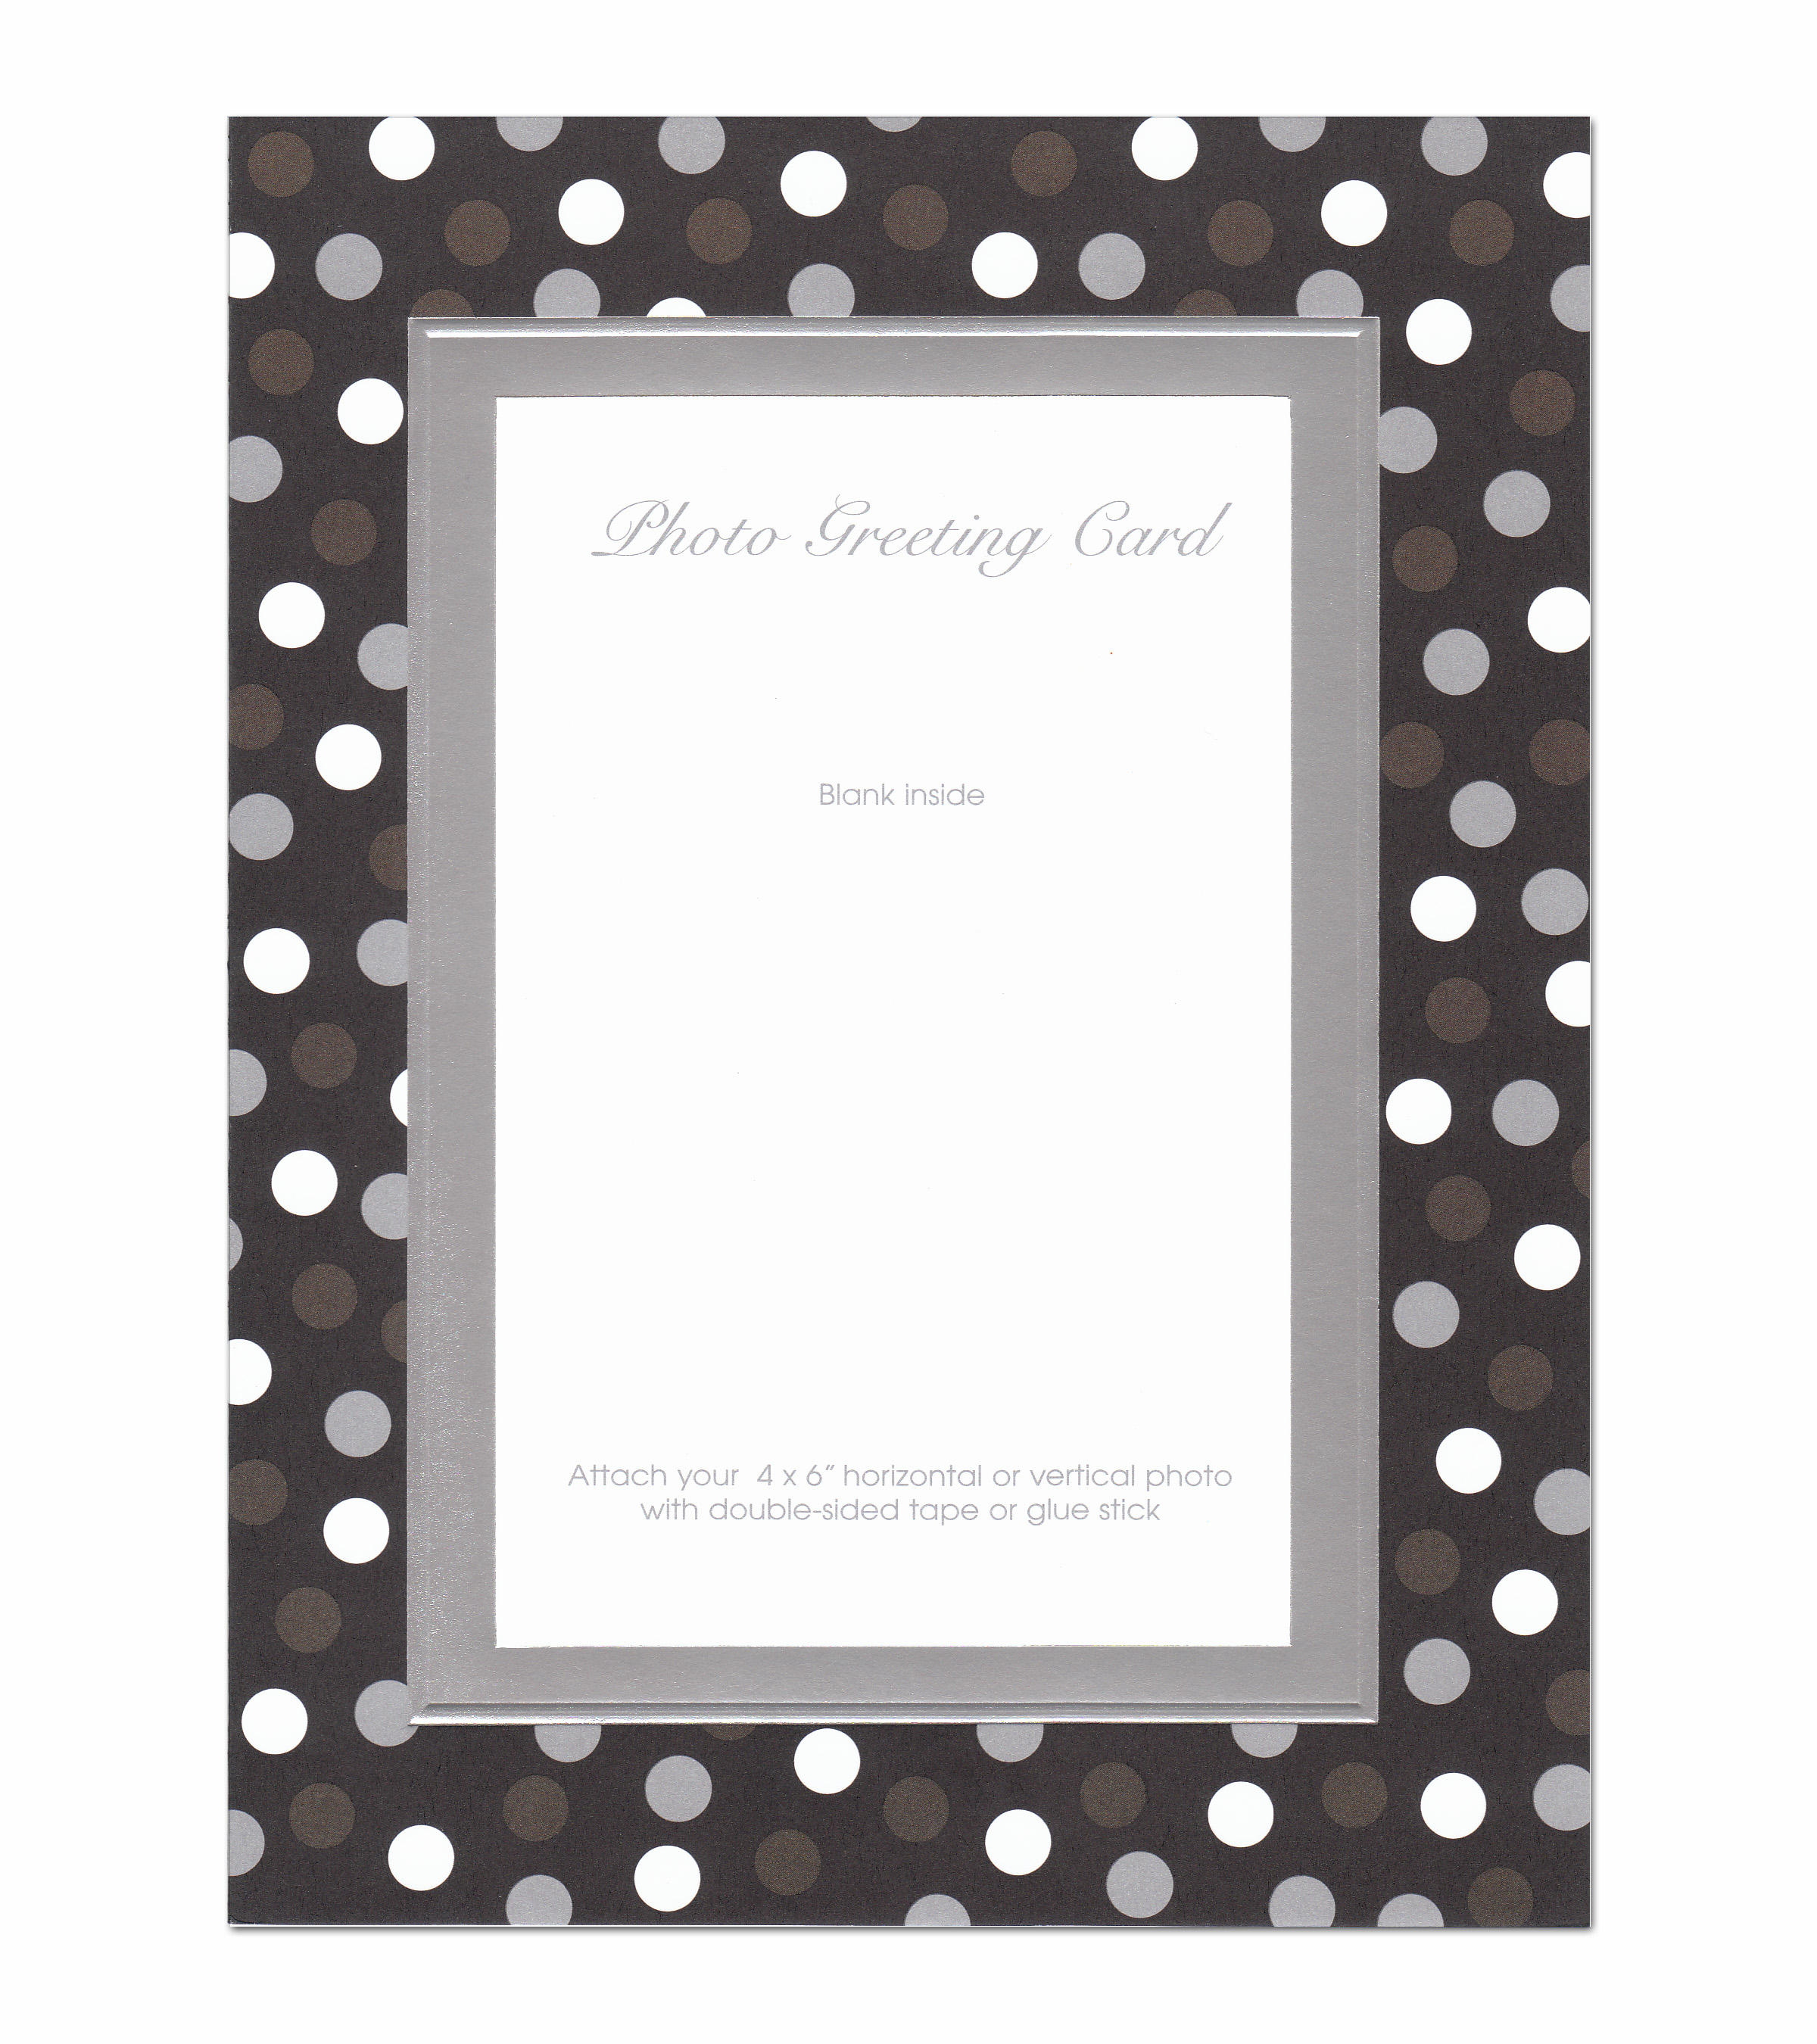 Silver and White Dots Photo Card  - Beautiful Silver foil Embossed framed Photo card with white, chocolate and silver polka dots around the photo area.  This card comes blank inside and you can personalize with your holiday greeting.  Comes with white envelopeIf you would like us to personalize this greeting card, please indicate you would like it Vertical or horizontal.